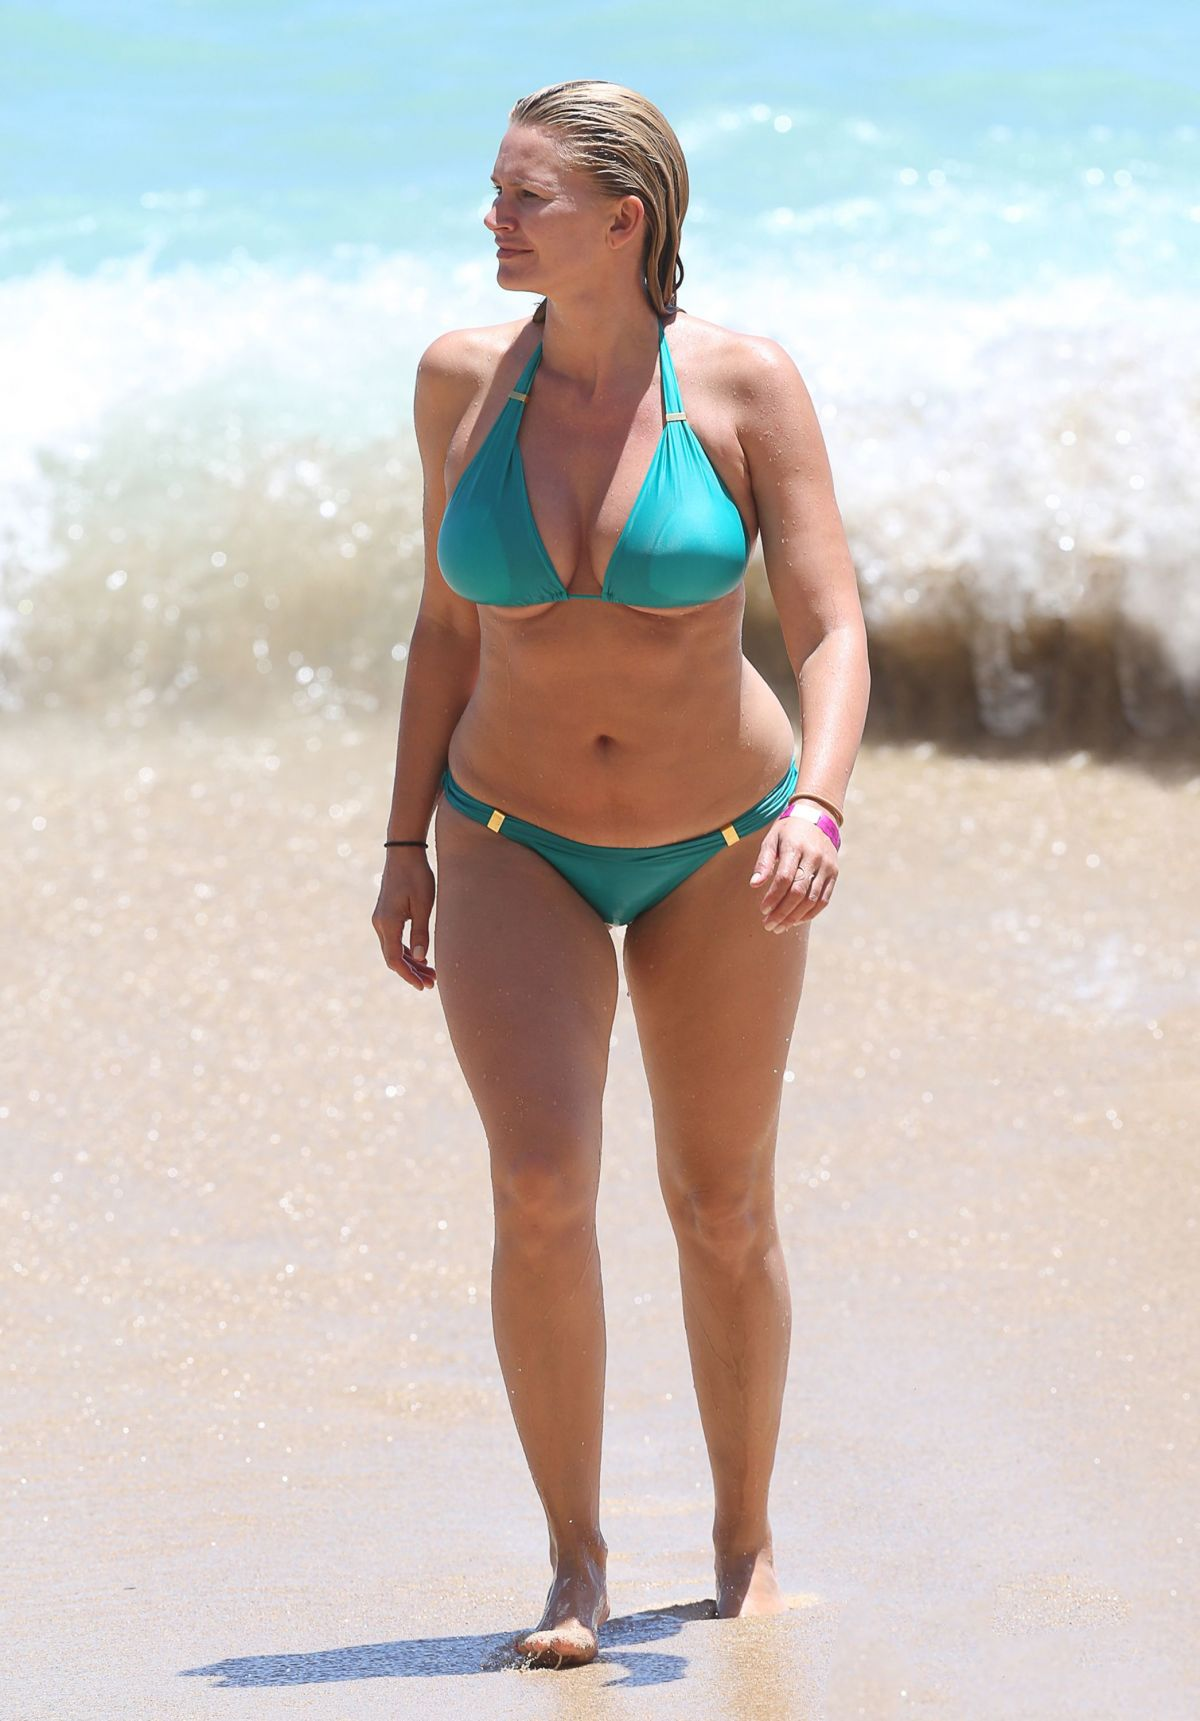 Natasha Henstridge Wearing A Bikini At A Beach In Hawaii